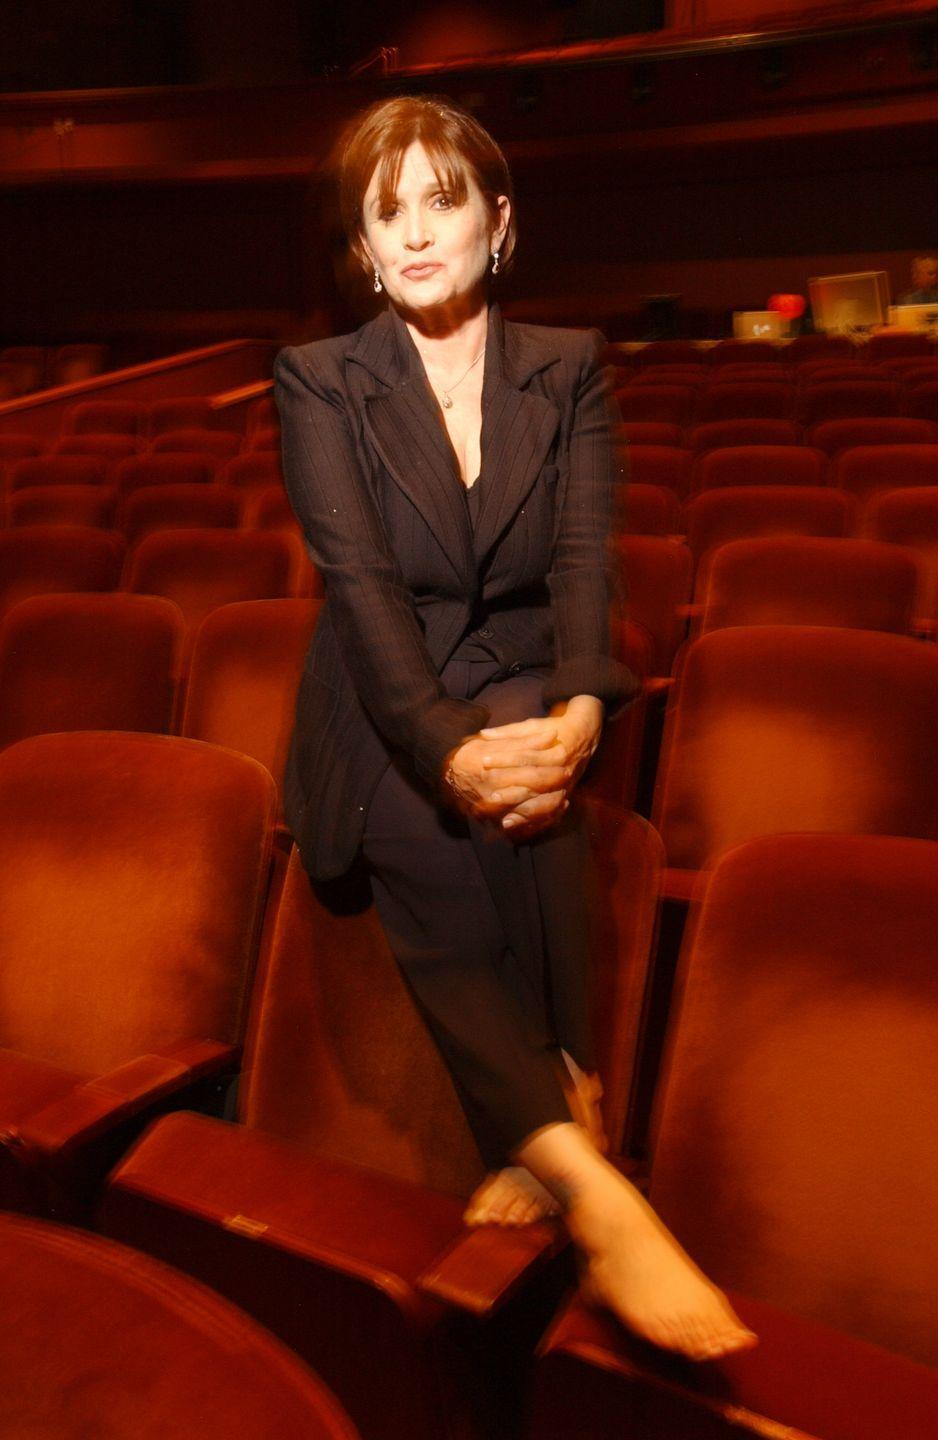 <p>Carrie headlined her own show, <em>Wishful Drinking</em>, at the Geffen Playhouse in Los Angeles. The show opened to rave reviews and ran from November 2006 until January 2007. It was later written into an autobiography non-fiction book of the same name.</p>